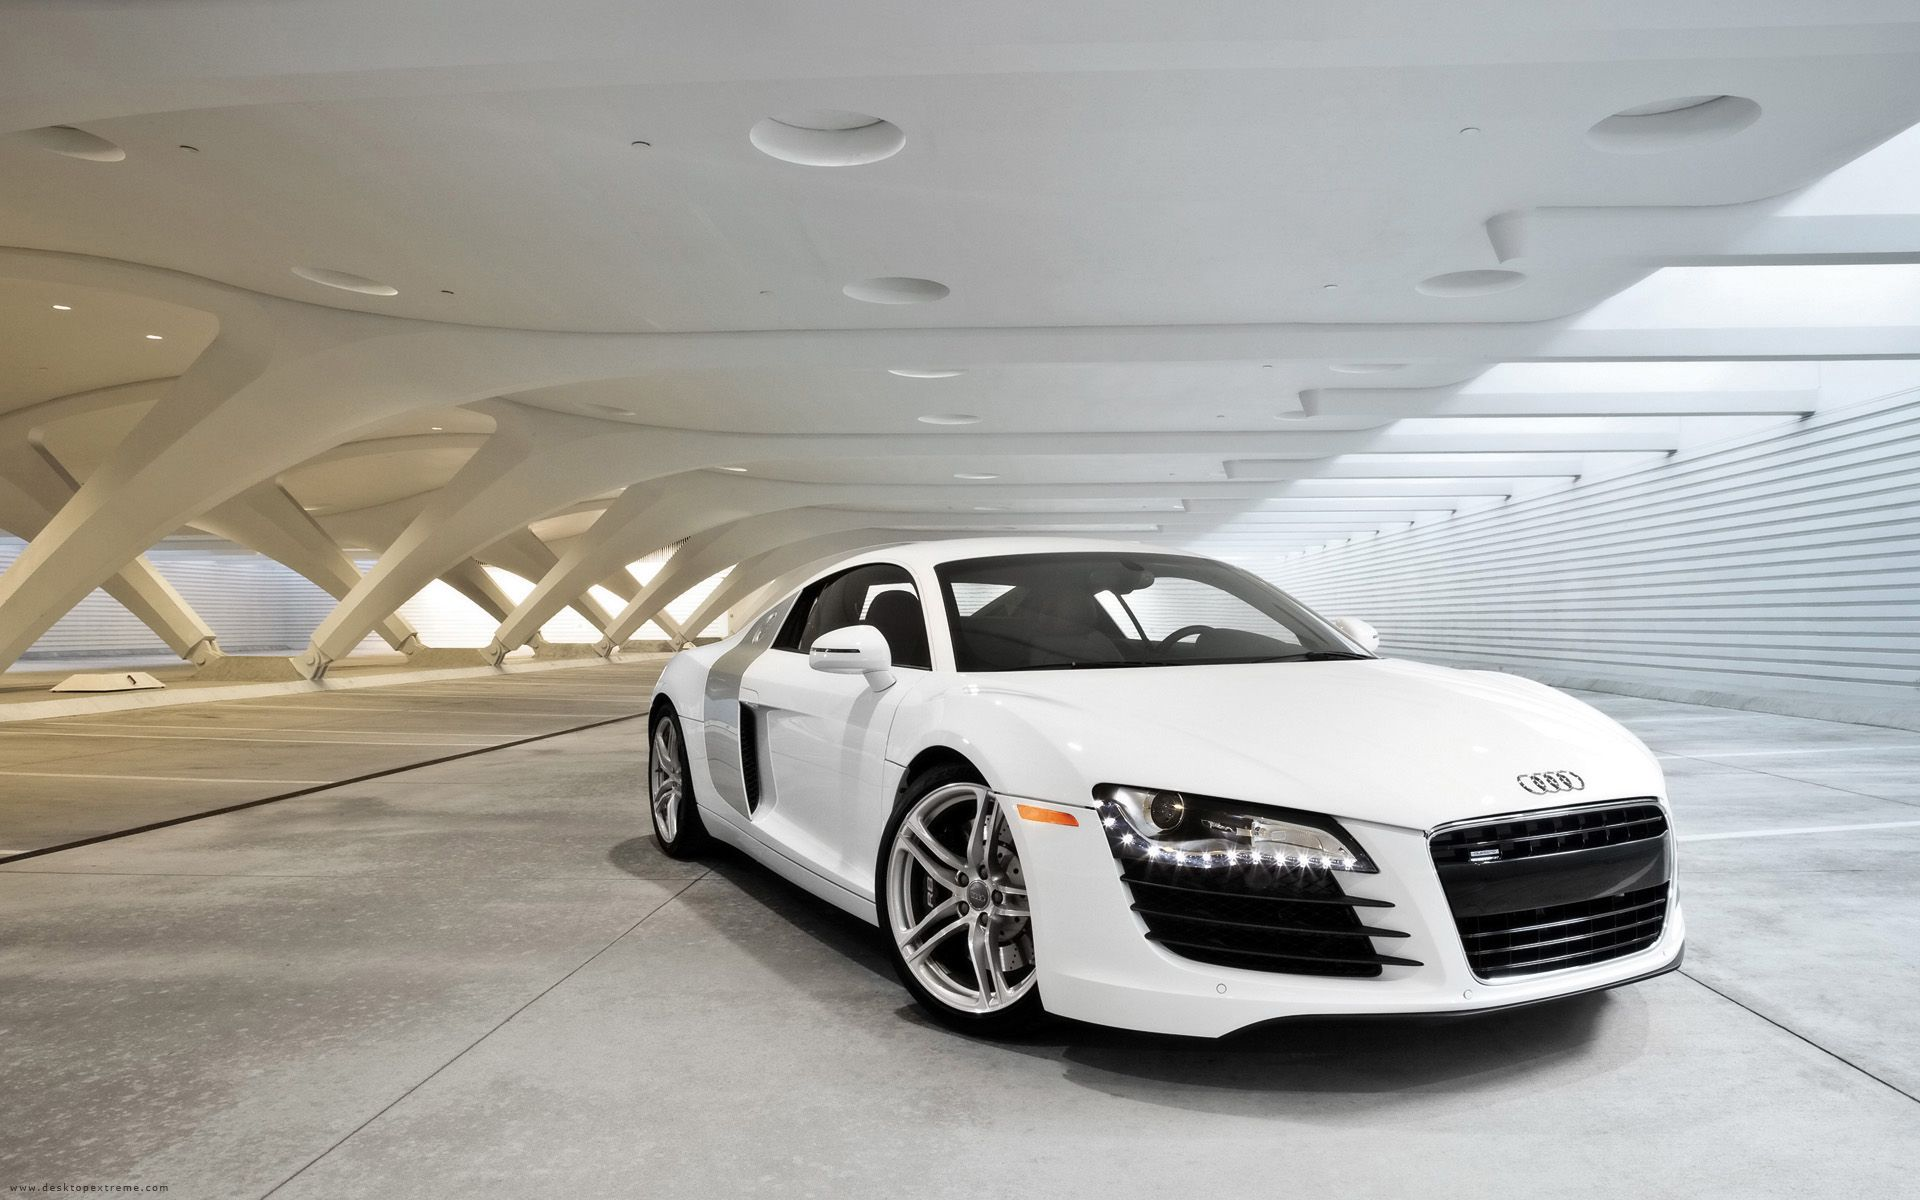 Audi R HD Desktop Wallpapers  wallpapers R Wallpapers HD, Desktop Backgrounds, Images and Pictures 1920x1200